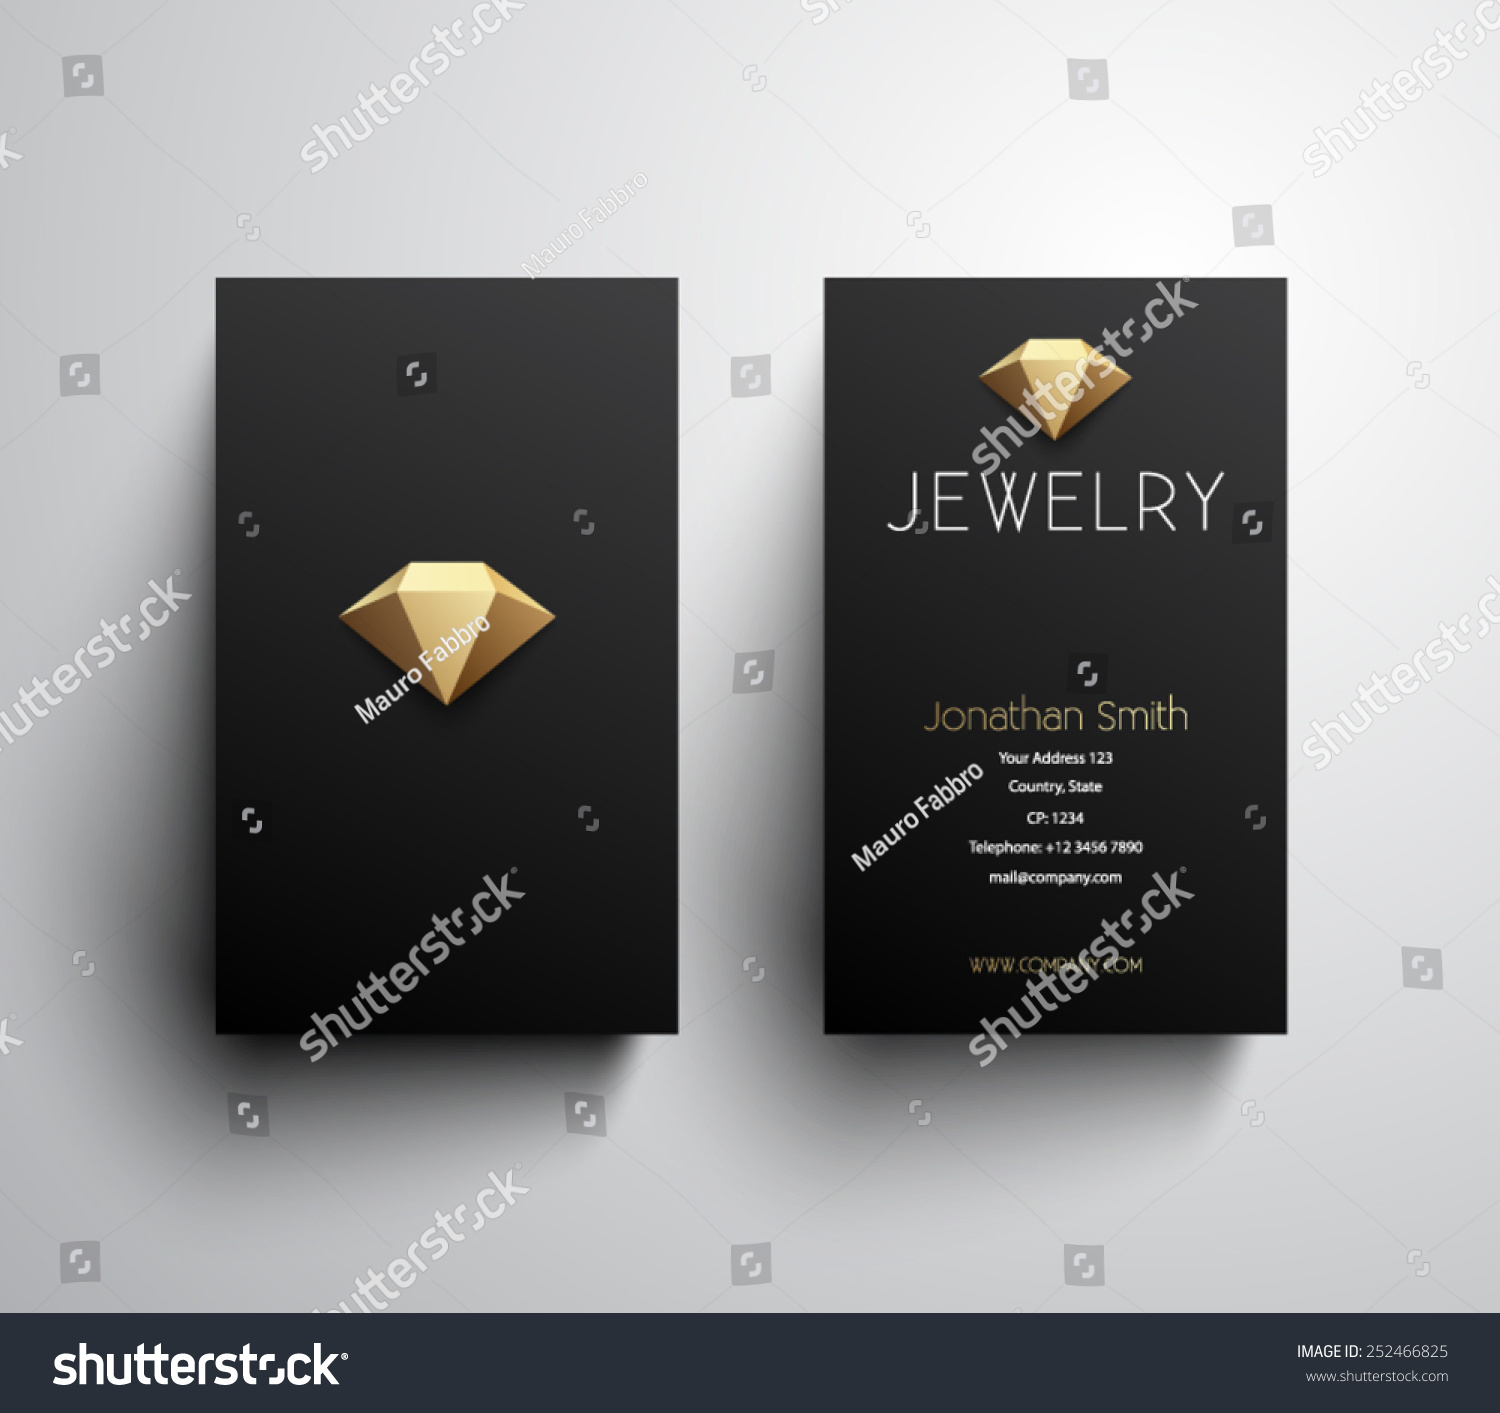 Abstract Jewelry Business Card Template, Clean And Modern ...